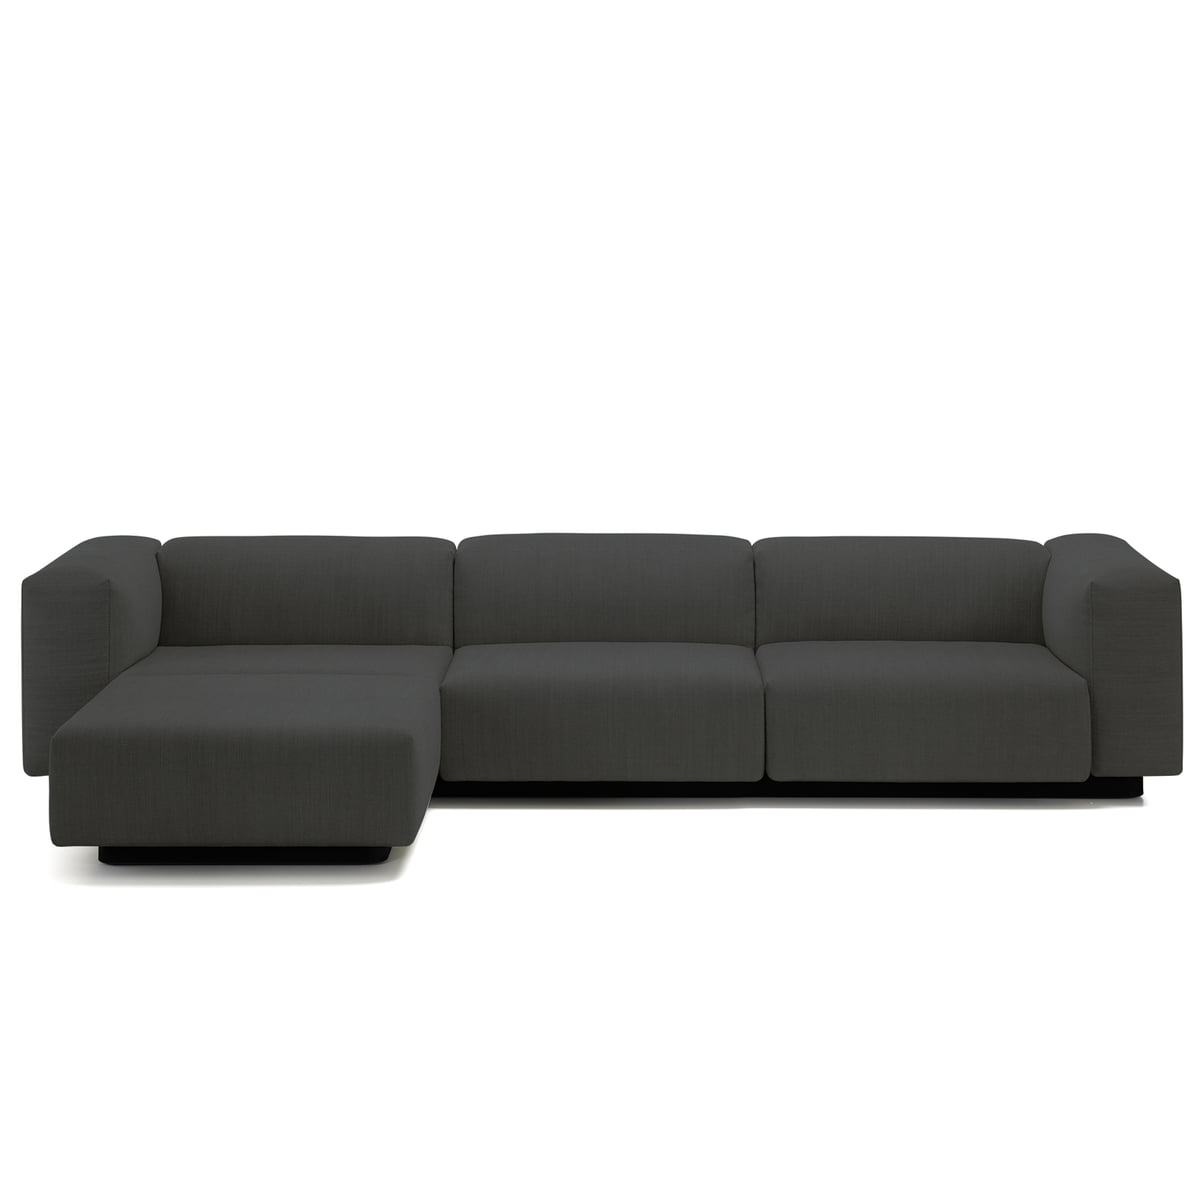 Buy the soft modular corner sofa from vitra for Chaise longue fr